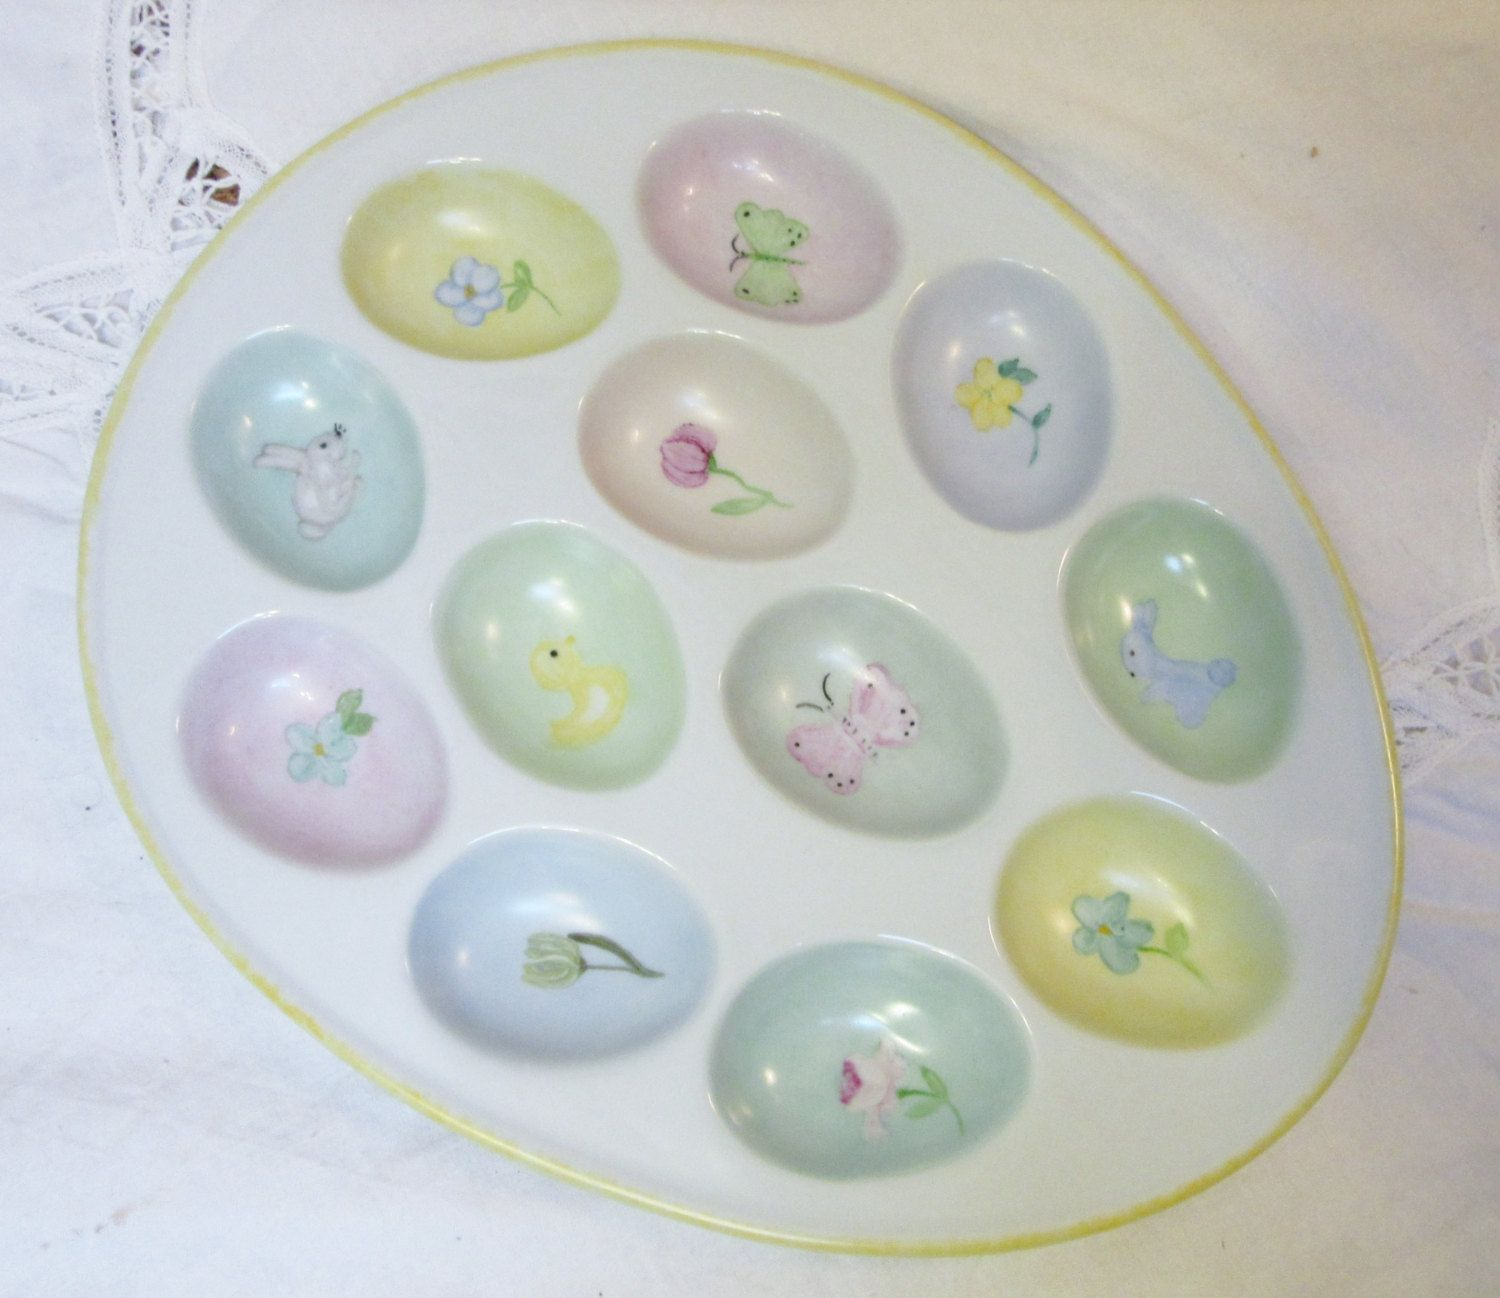 Beautiful Deviled Egg Plate Tray, Porcelain Ceramic, Egg Serving Tray, Easter Egg  Plate Tray Images